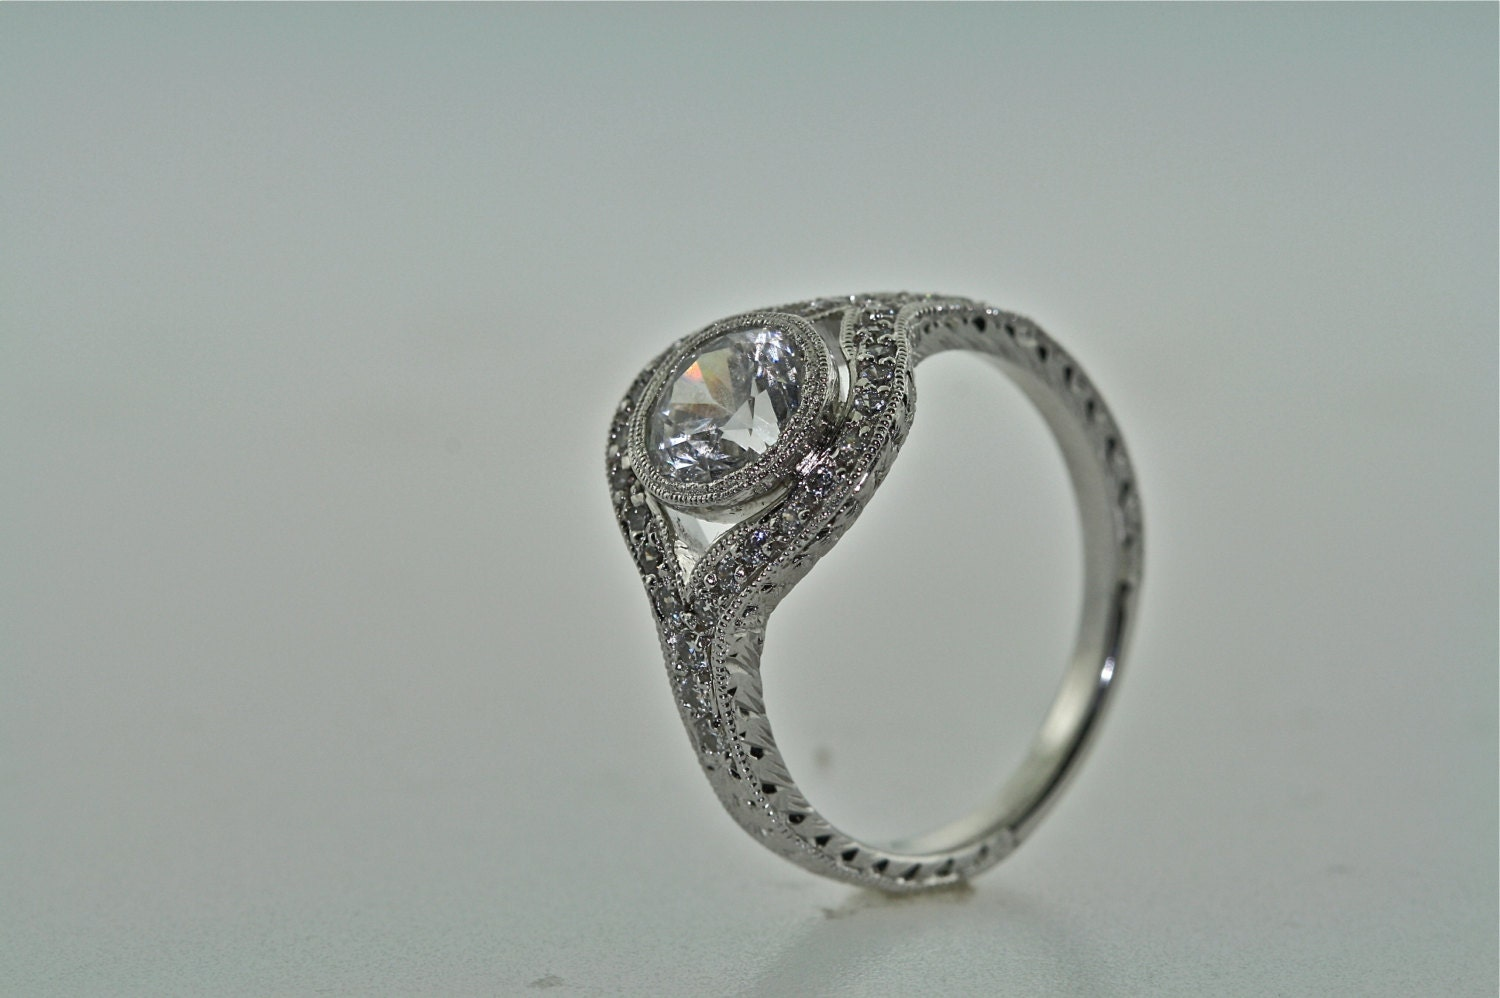 14kt White Gold and Diamond Art Deco Design Hand Engraved